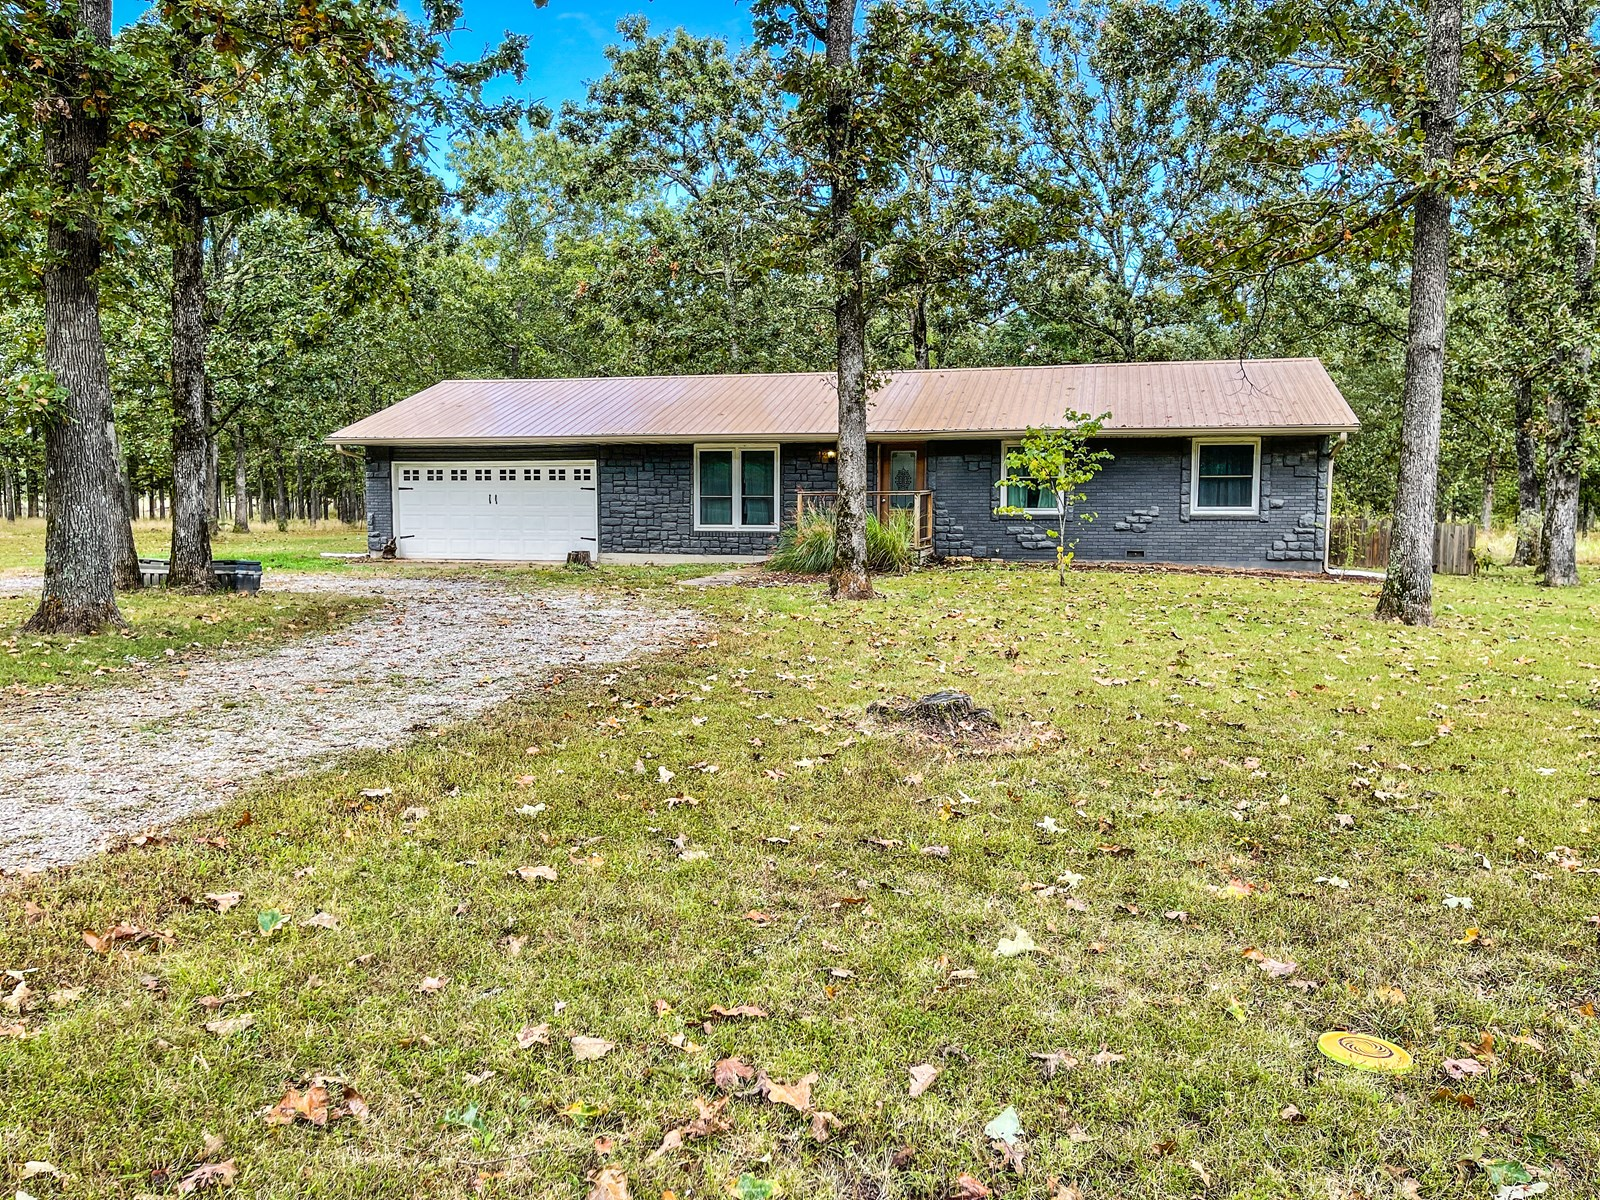 3 Bedroom, 2 Bath Country Home on 4.75 Acres in Licking.